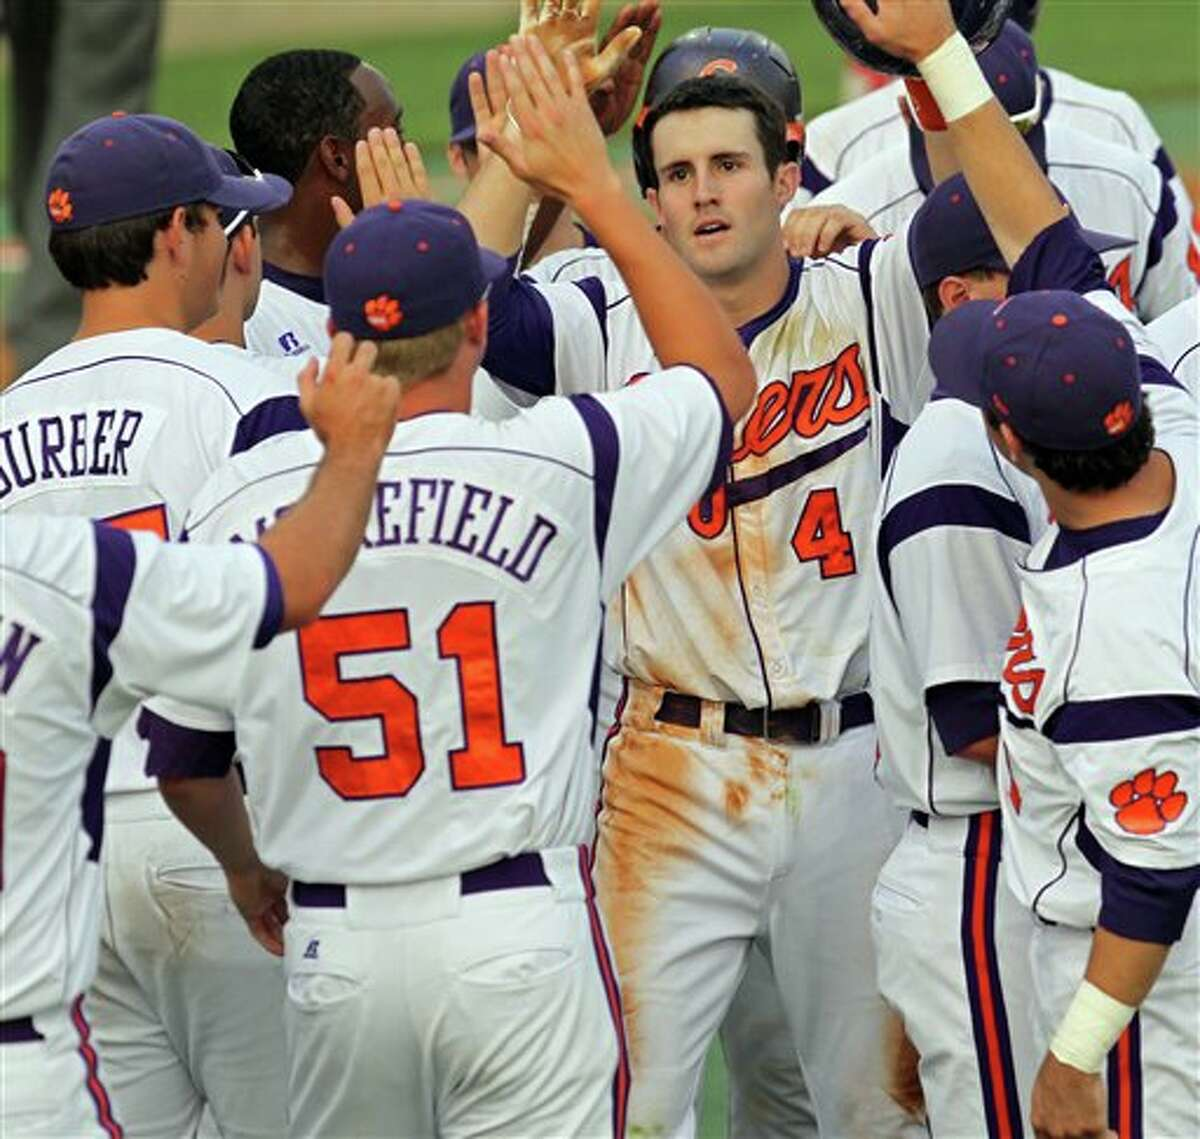 Clemson's John Hinson (4) gets high-fives from his teammates after hitting a three-run home run during an NCAA college baseball tournament game against Sacred Heart at Doug Kingsmore Stadium in Clemson, S.C., Friday, June 3, 2011. (AP Photo/Anderson Independent-Mail, Mark Crammer)